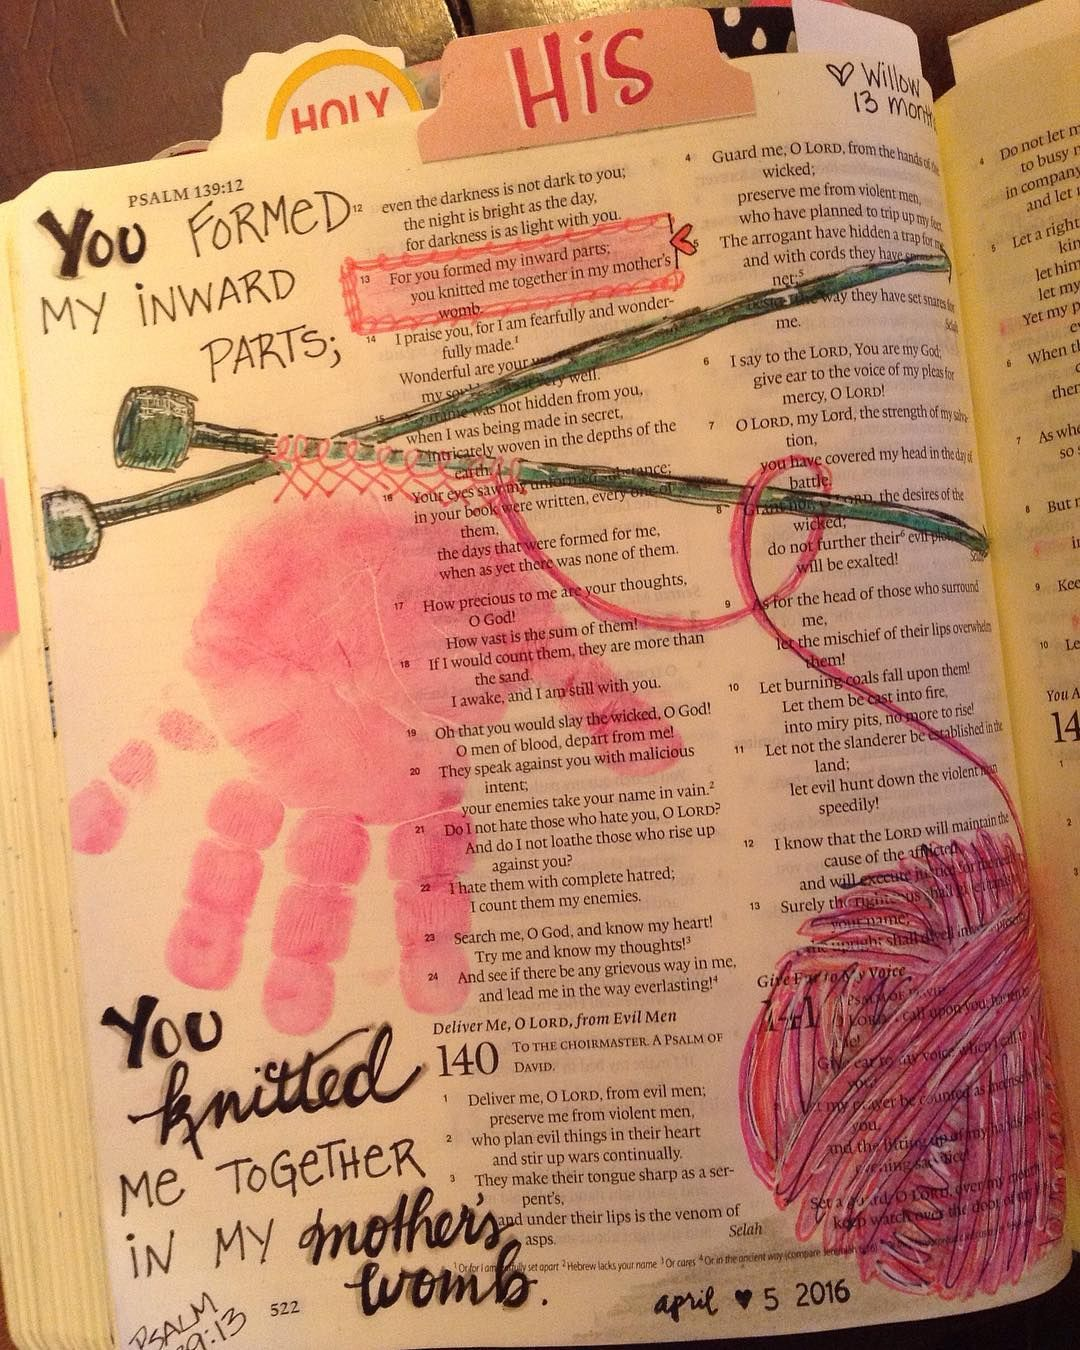 When I First Heard This Verse It Spoke Right To My Heart I Knit I Could Understand The Concept